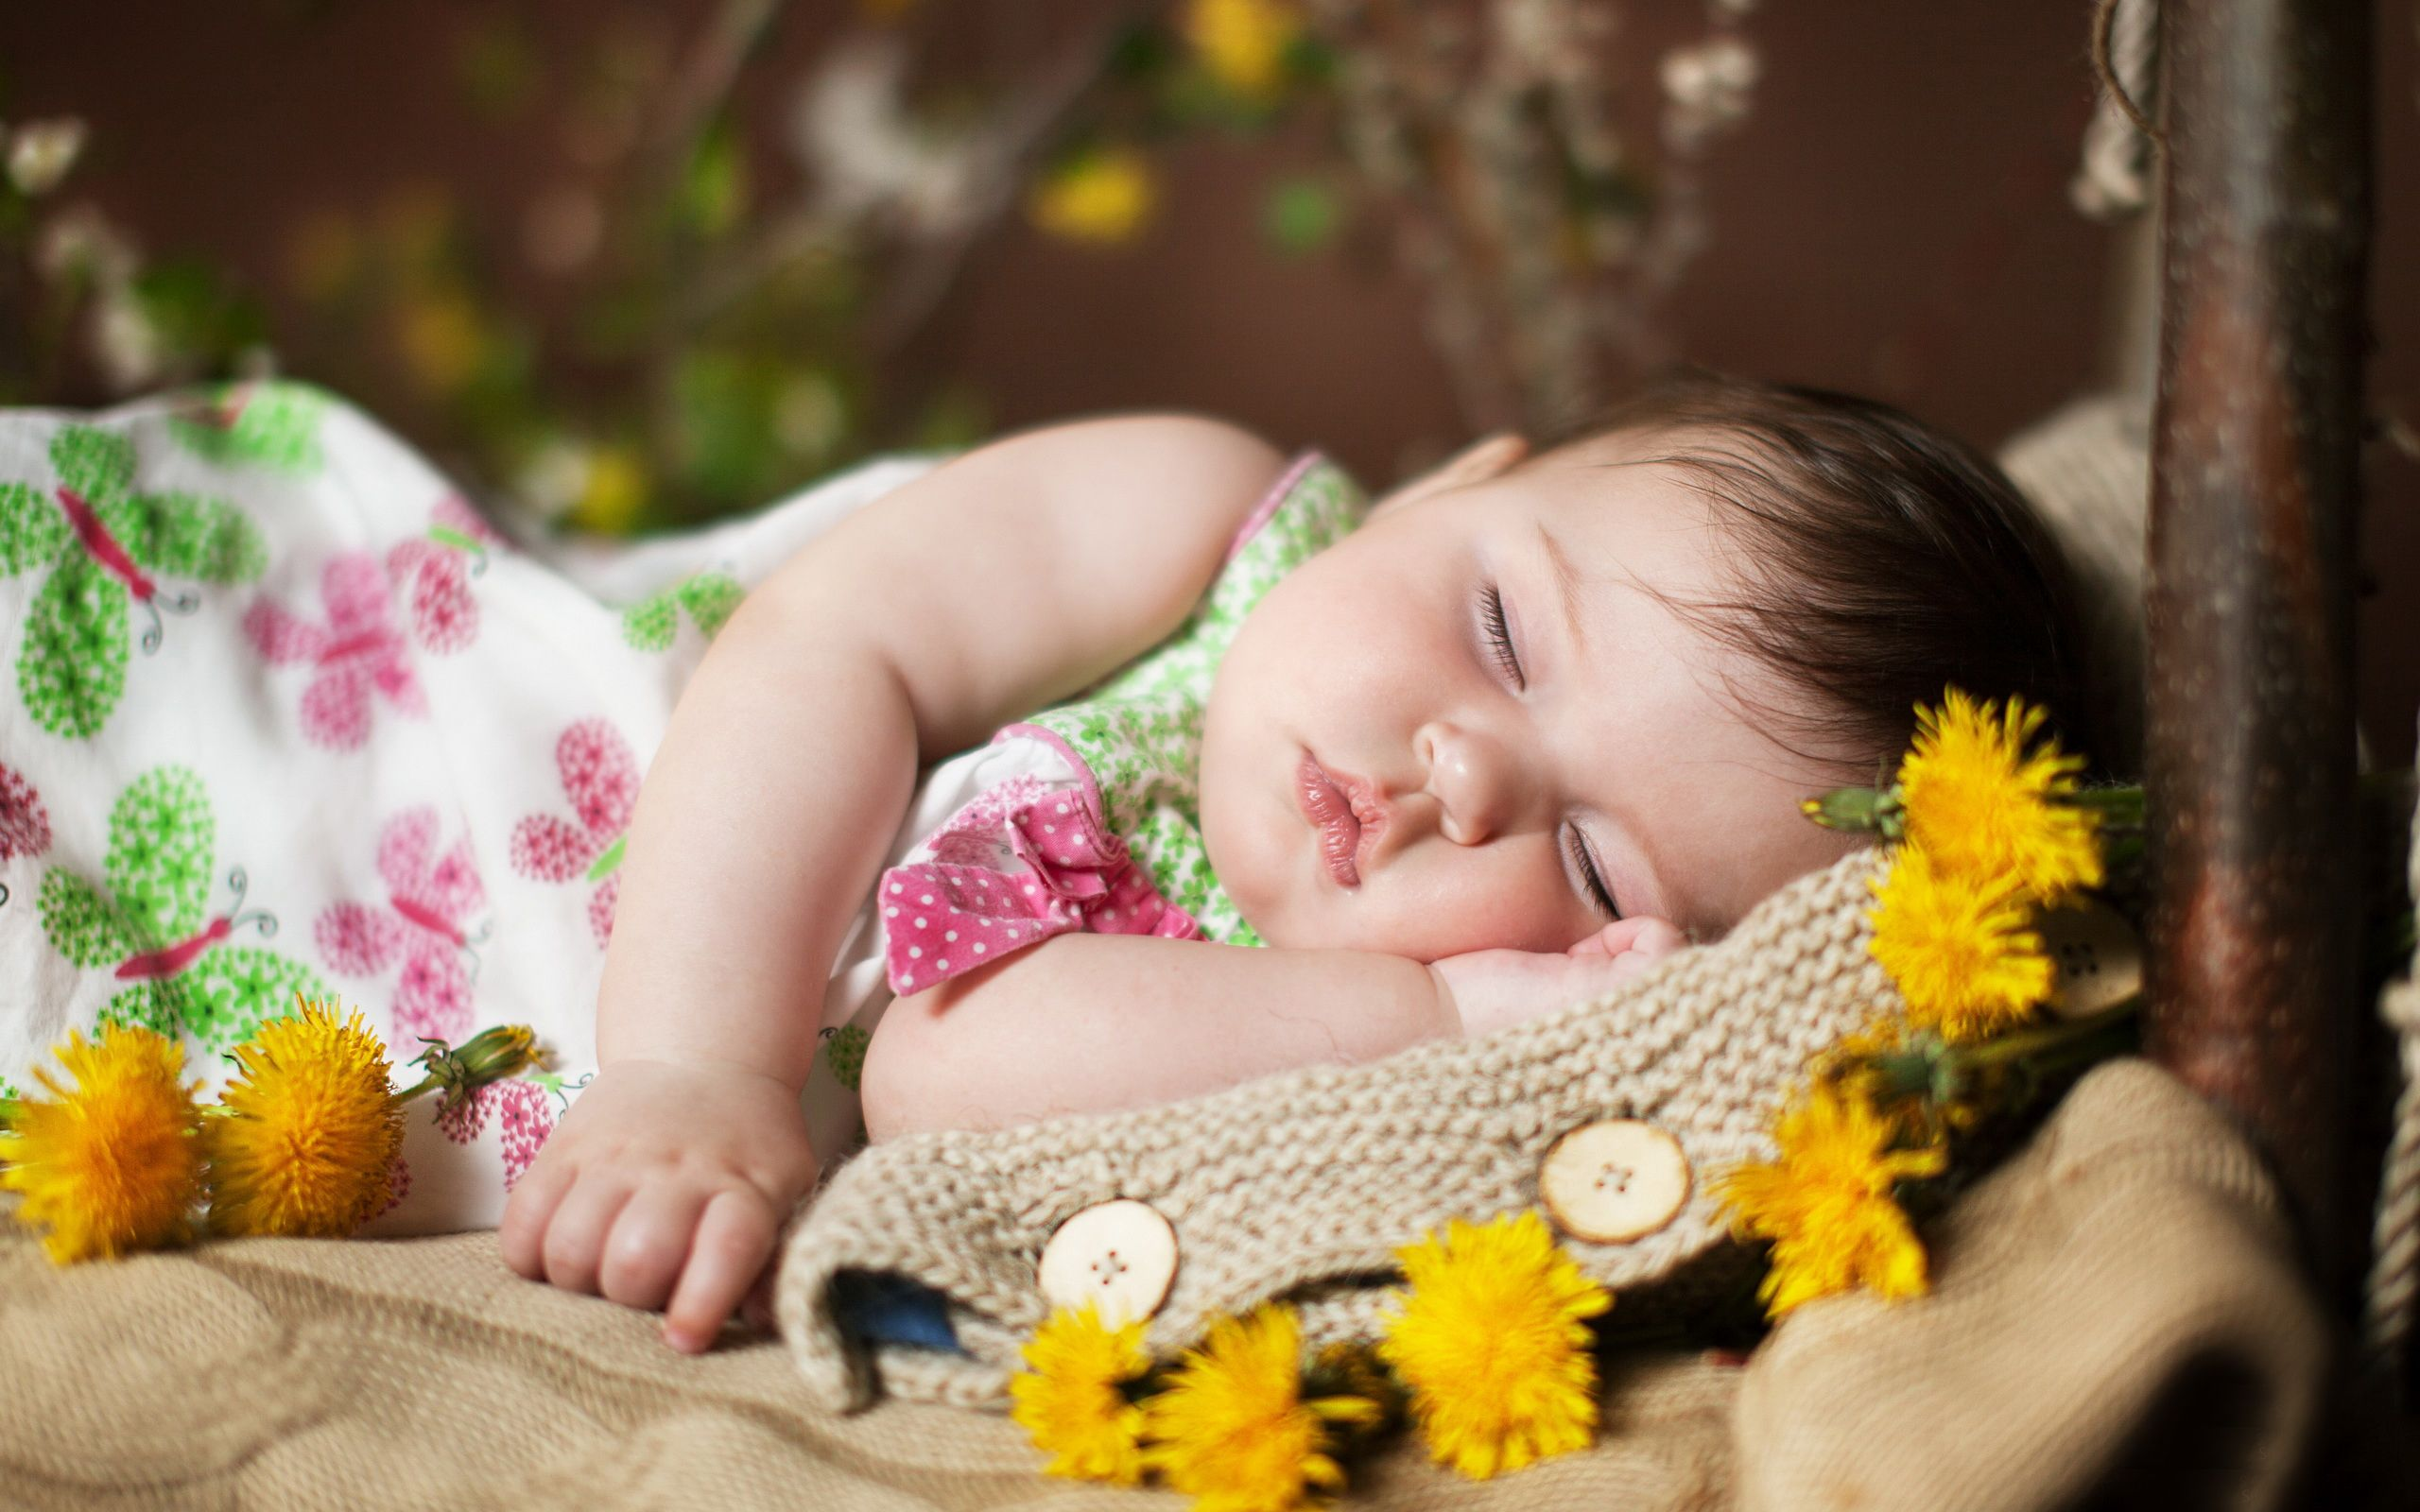 Cute Sleeping Baby Hd Wallpaper Dazzling Wallpaper Very Cute Baby Baby Beach Photos Baby Sleep